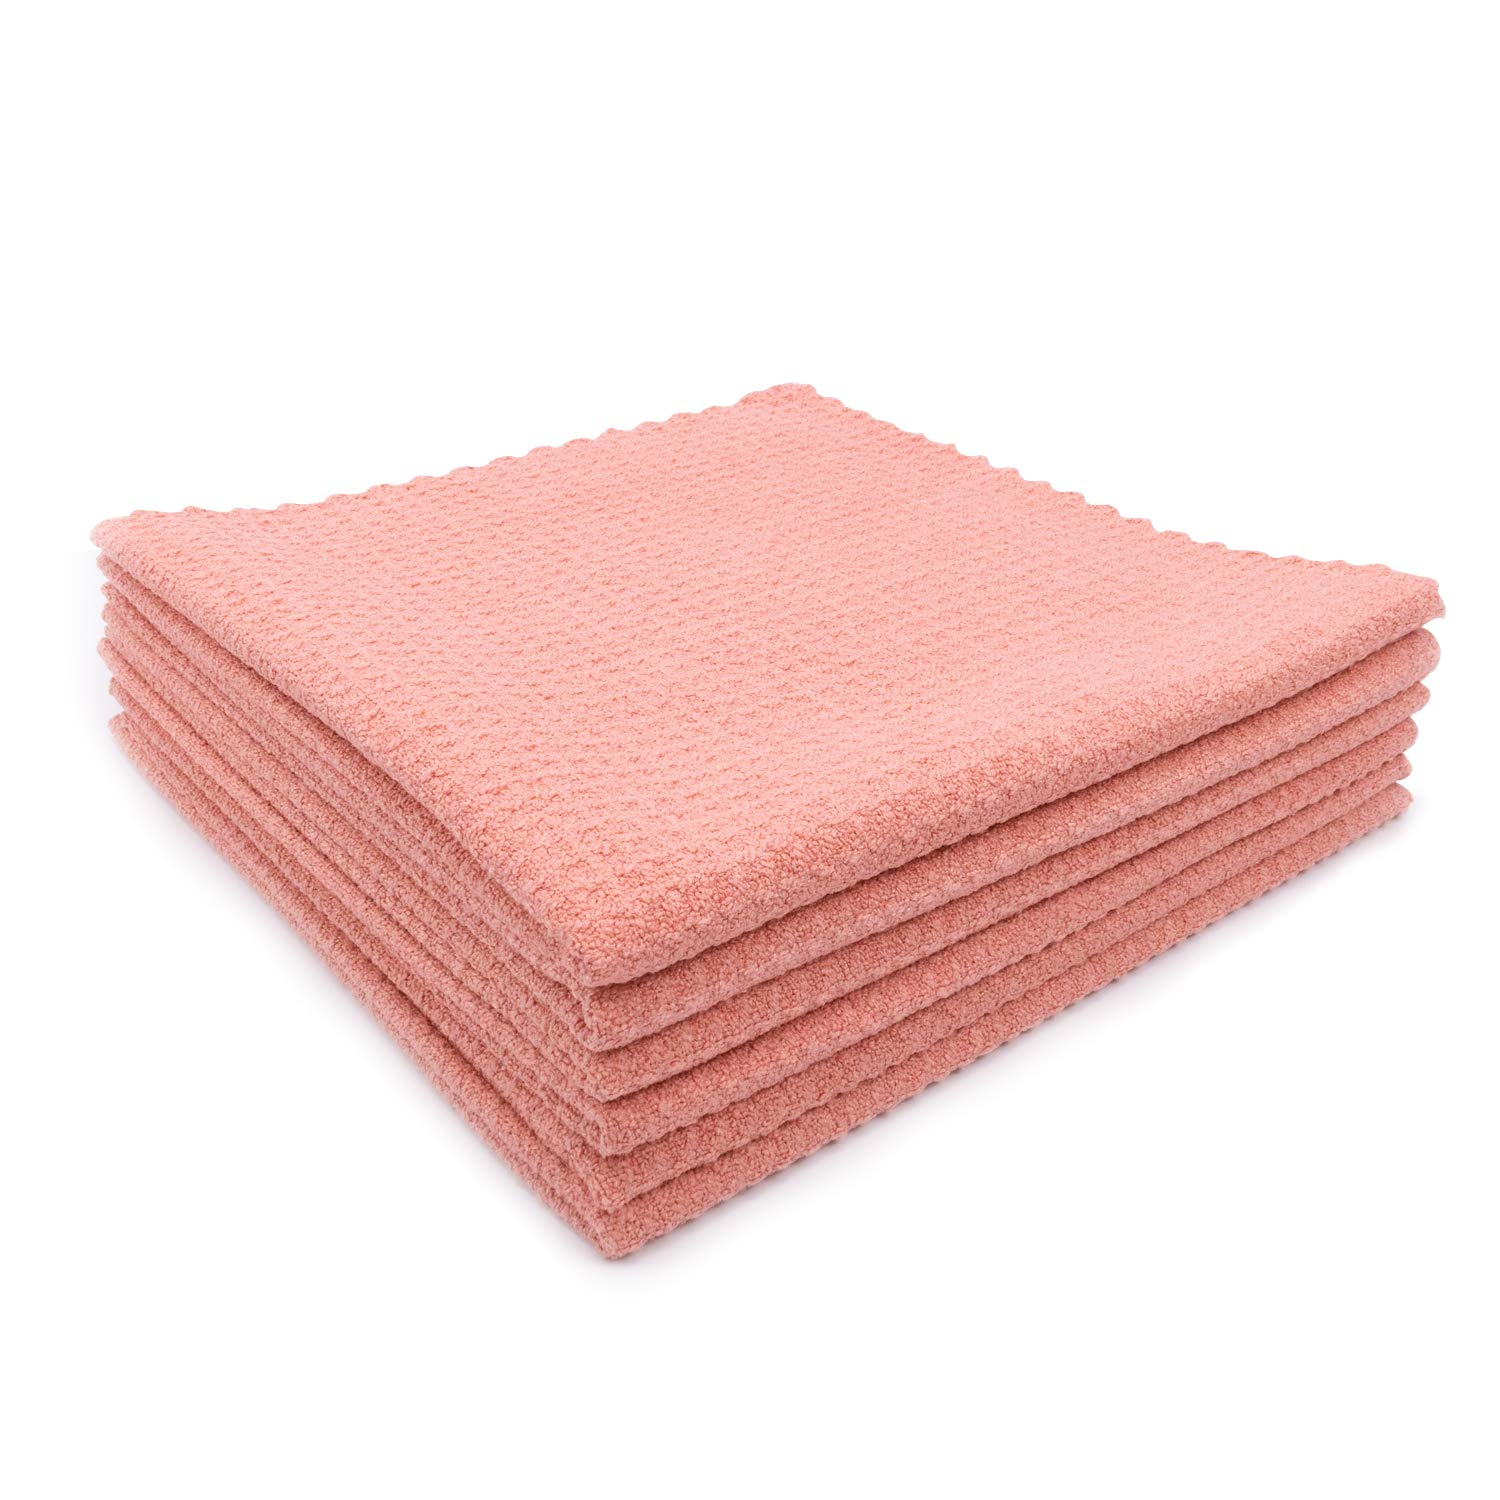 """SHSCLY Waffle Weave Microfiber Drying Towel Cleaning Cloth Water Absorption Decontamination Lint-Free Streak-Free Soft for Kitchen Household Car (Pink, 6 Pack 16"""" x 16"""")"""